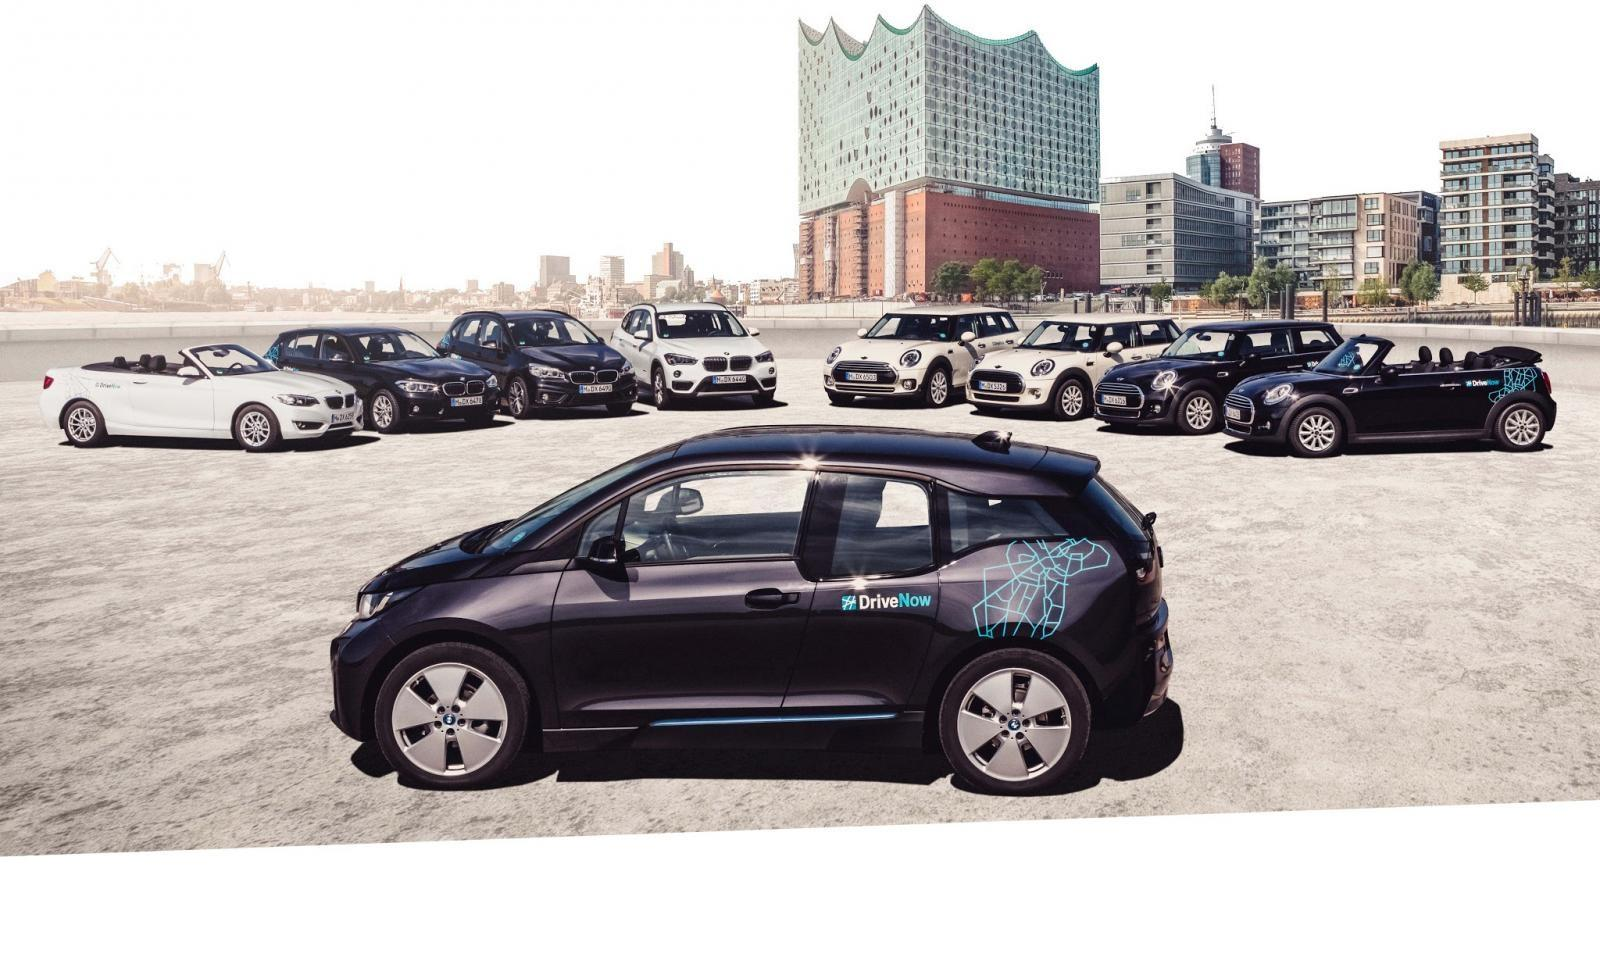 carsharing_fleet-germany1